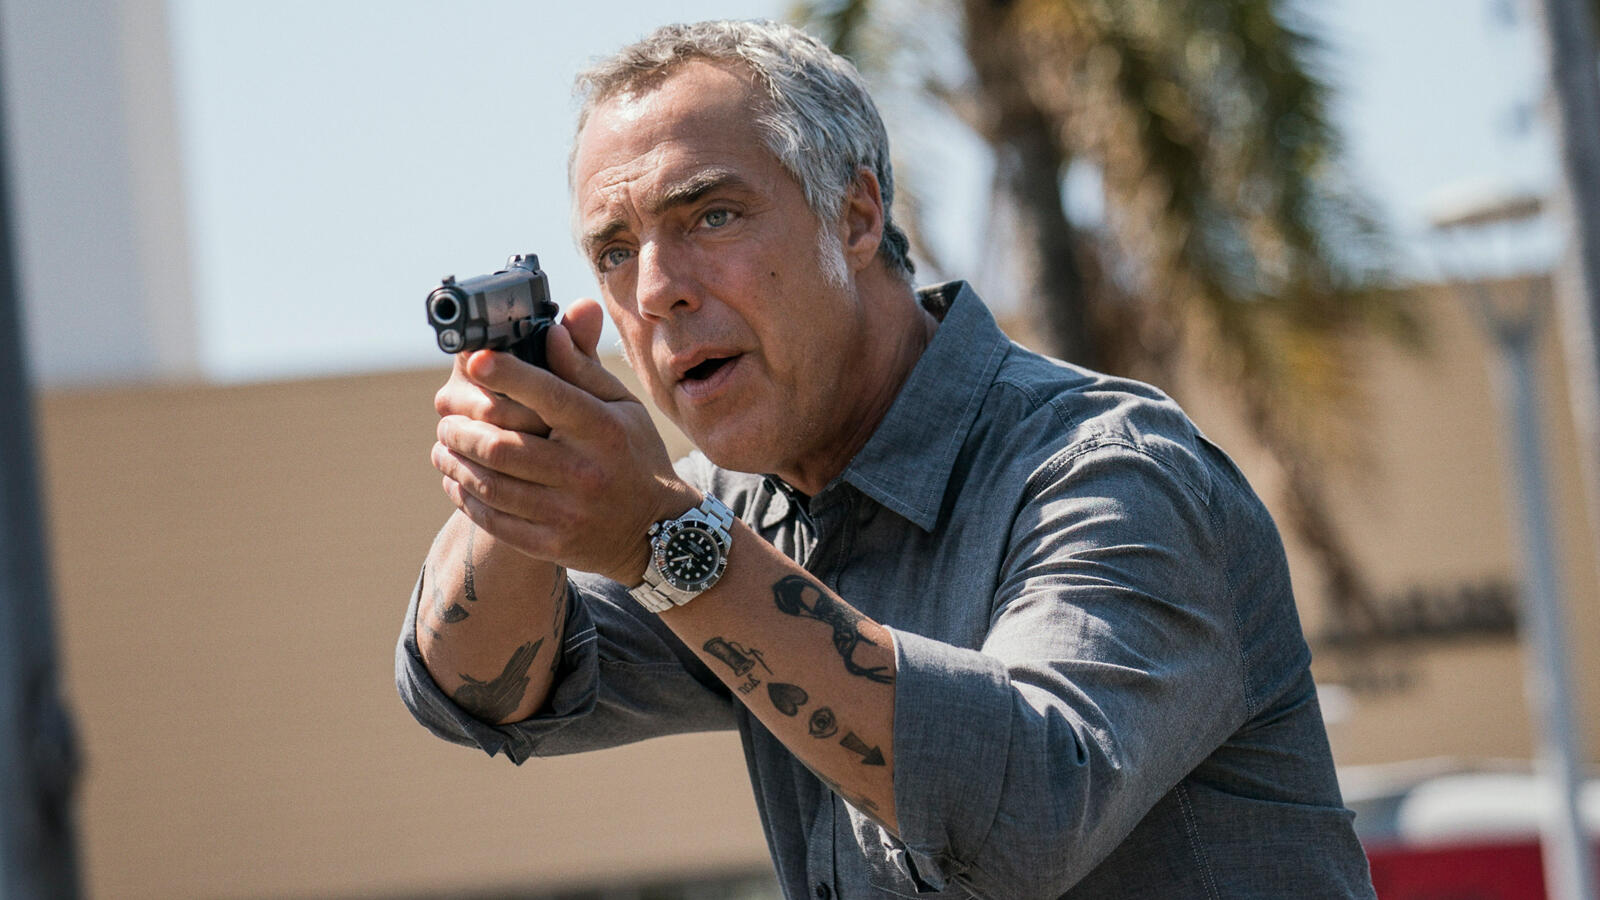 Im age of Titus Welliver as Harry Bosch in the TV series Bosch